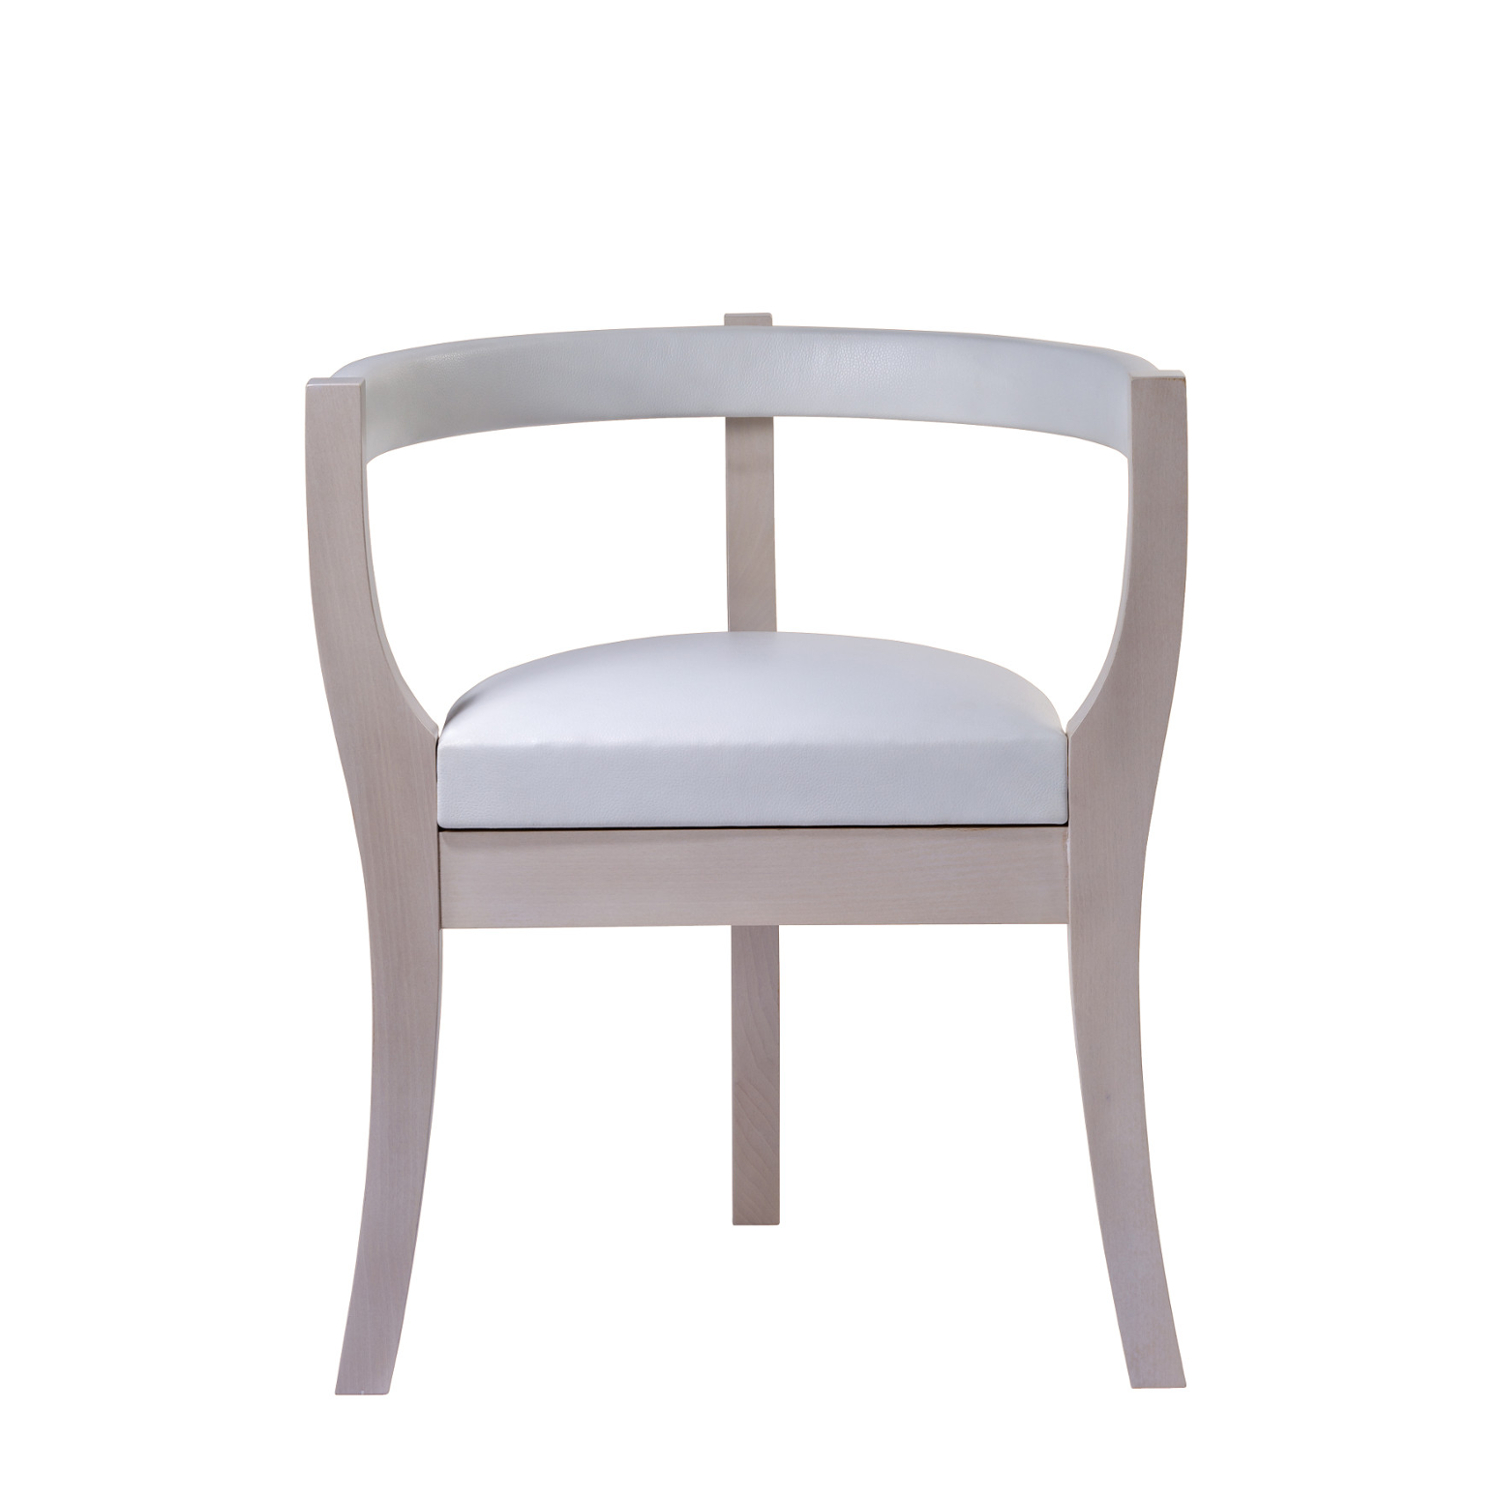 Harold chair - Philippe Hurel